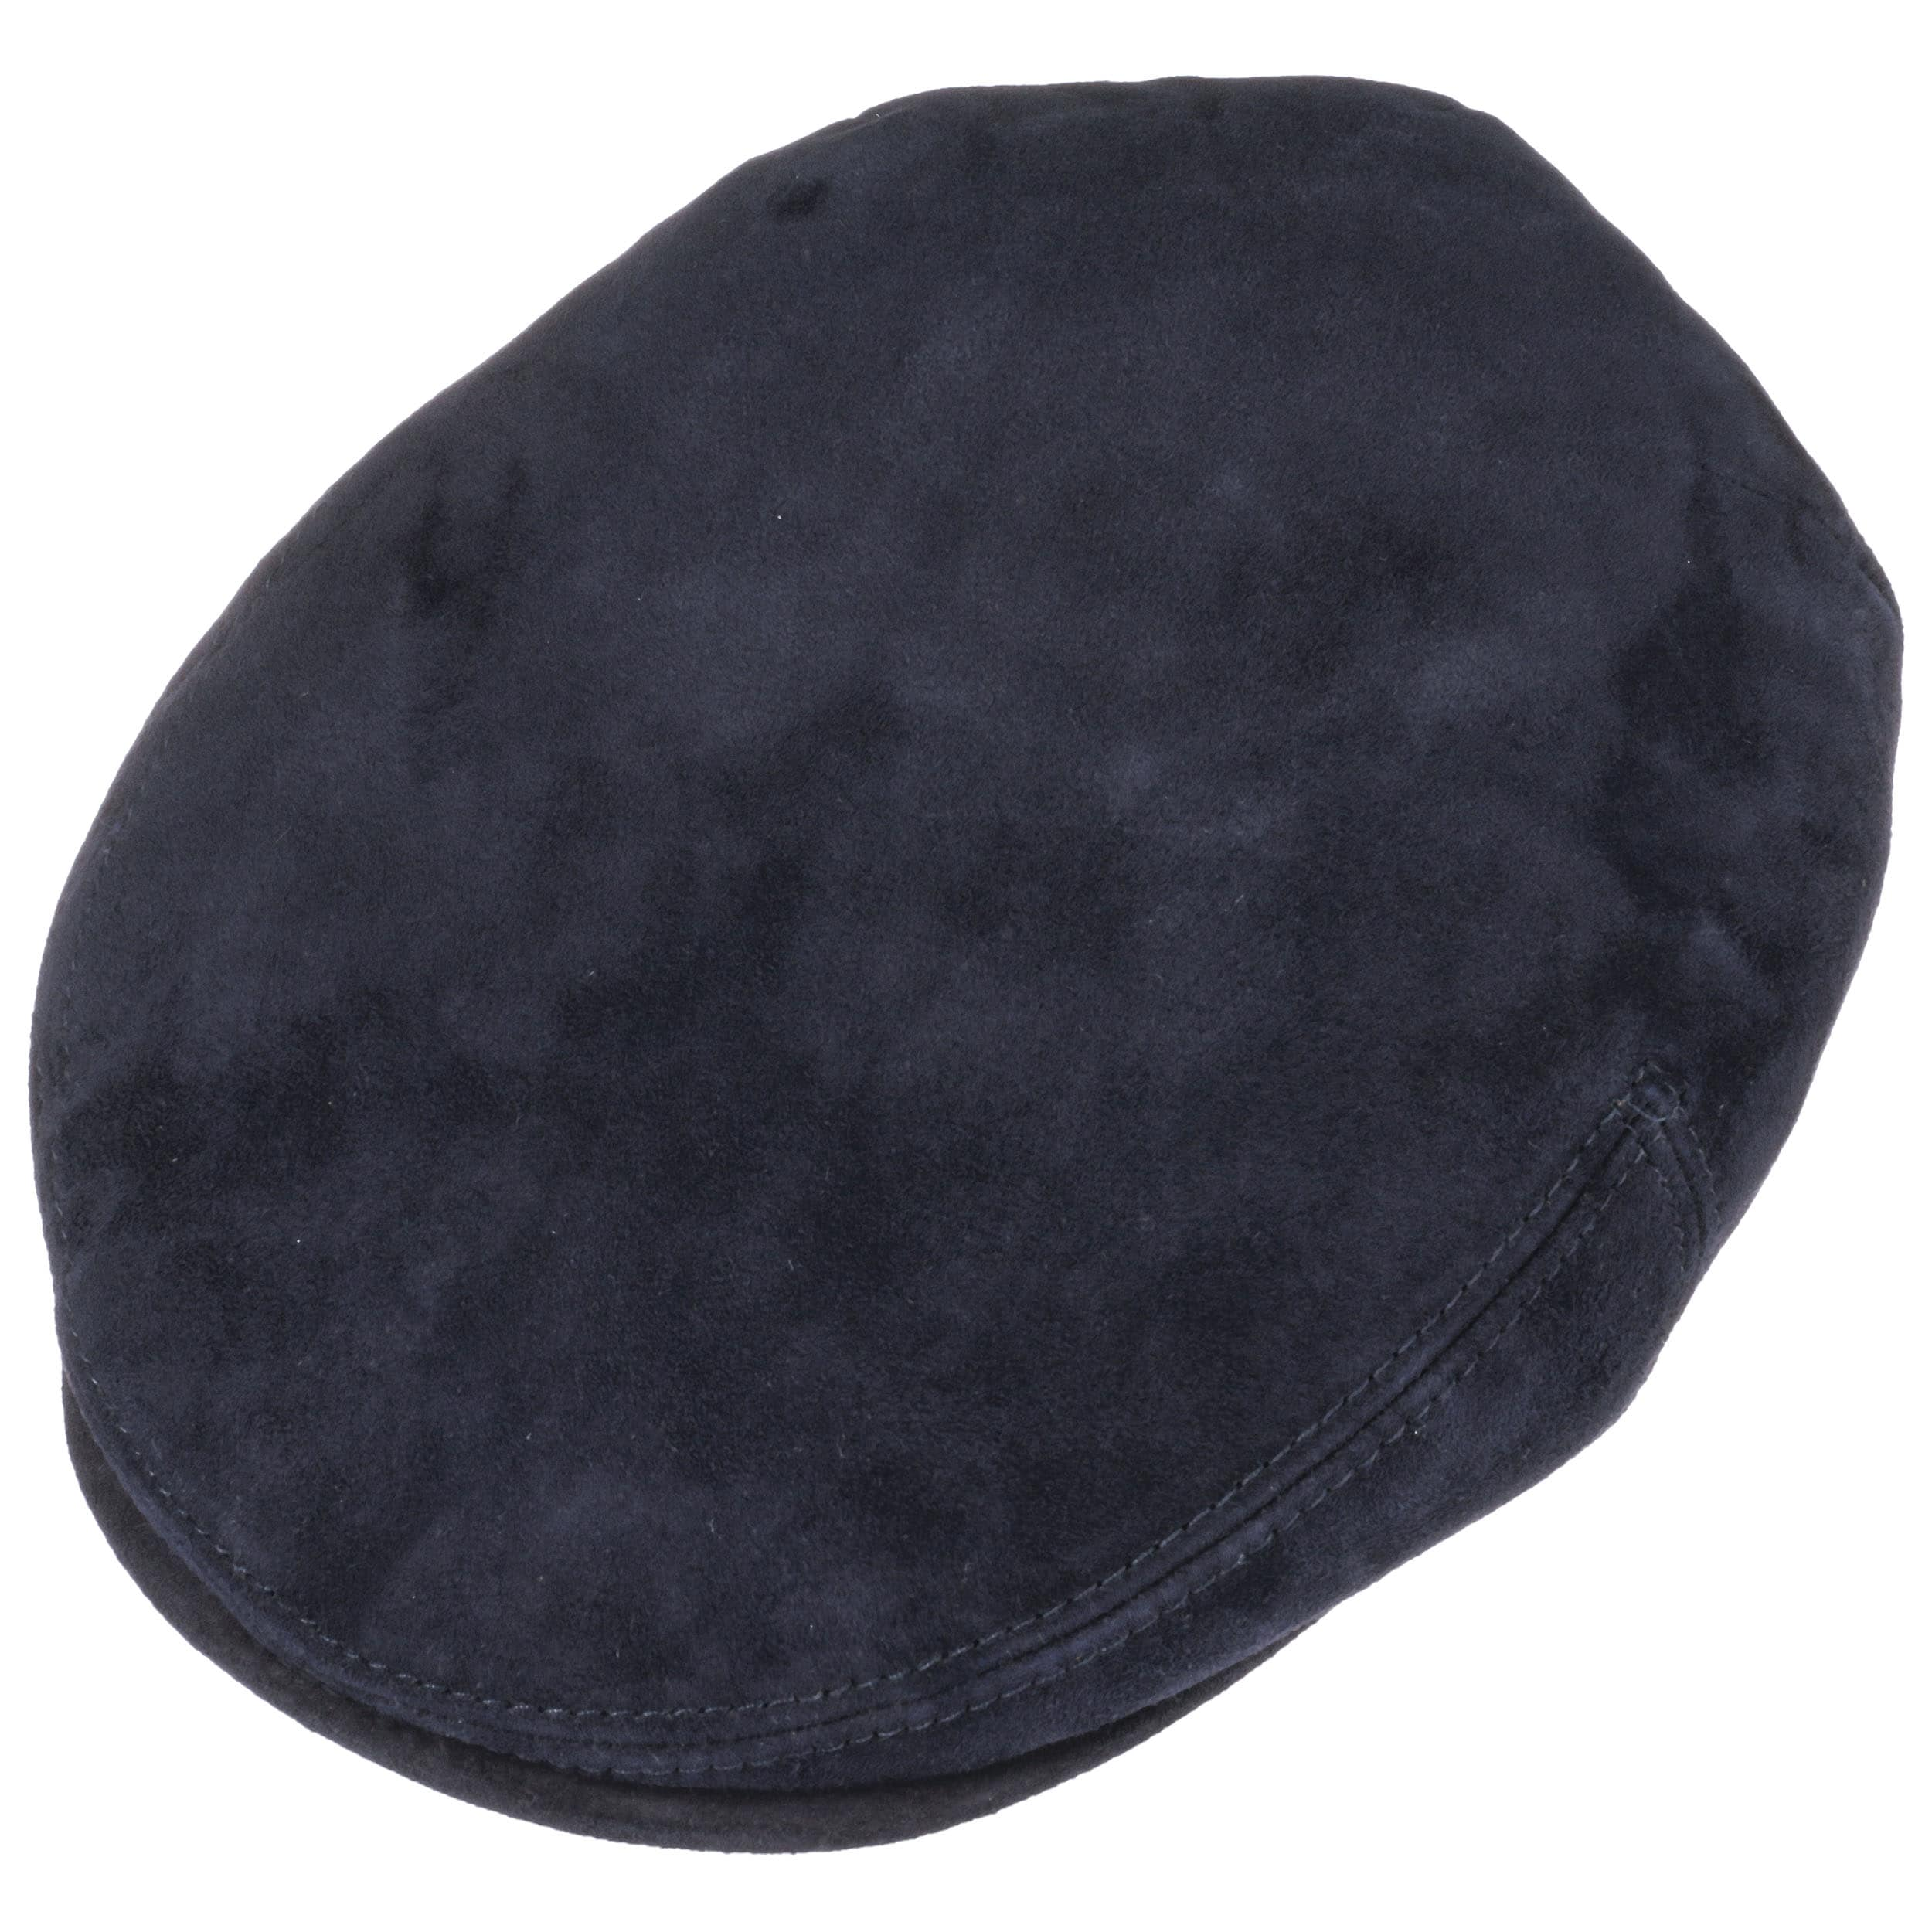 2d1b8490da9 Kent Goat Leather Flat Cap by Stetson - navy 1 ...